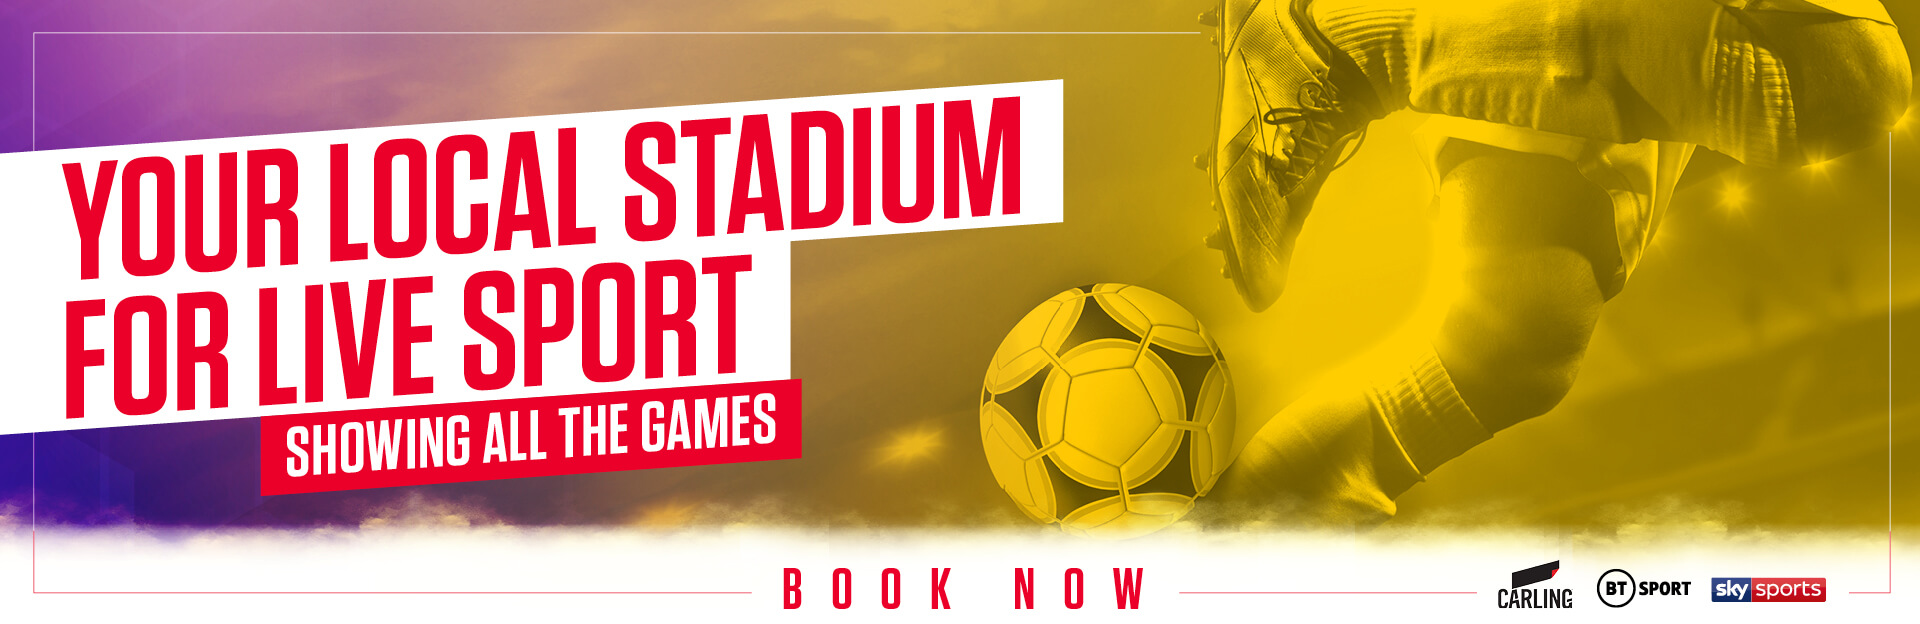 Live Sports at The Merebrook